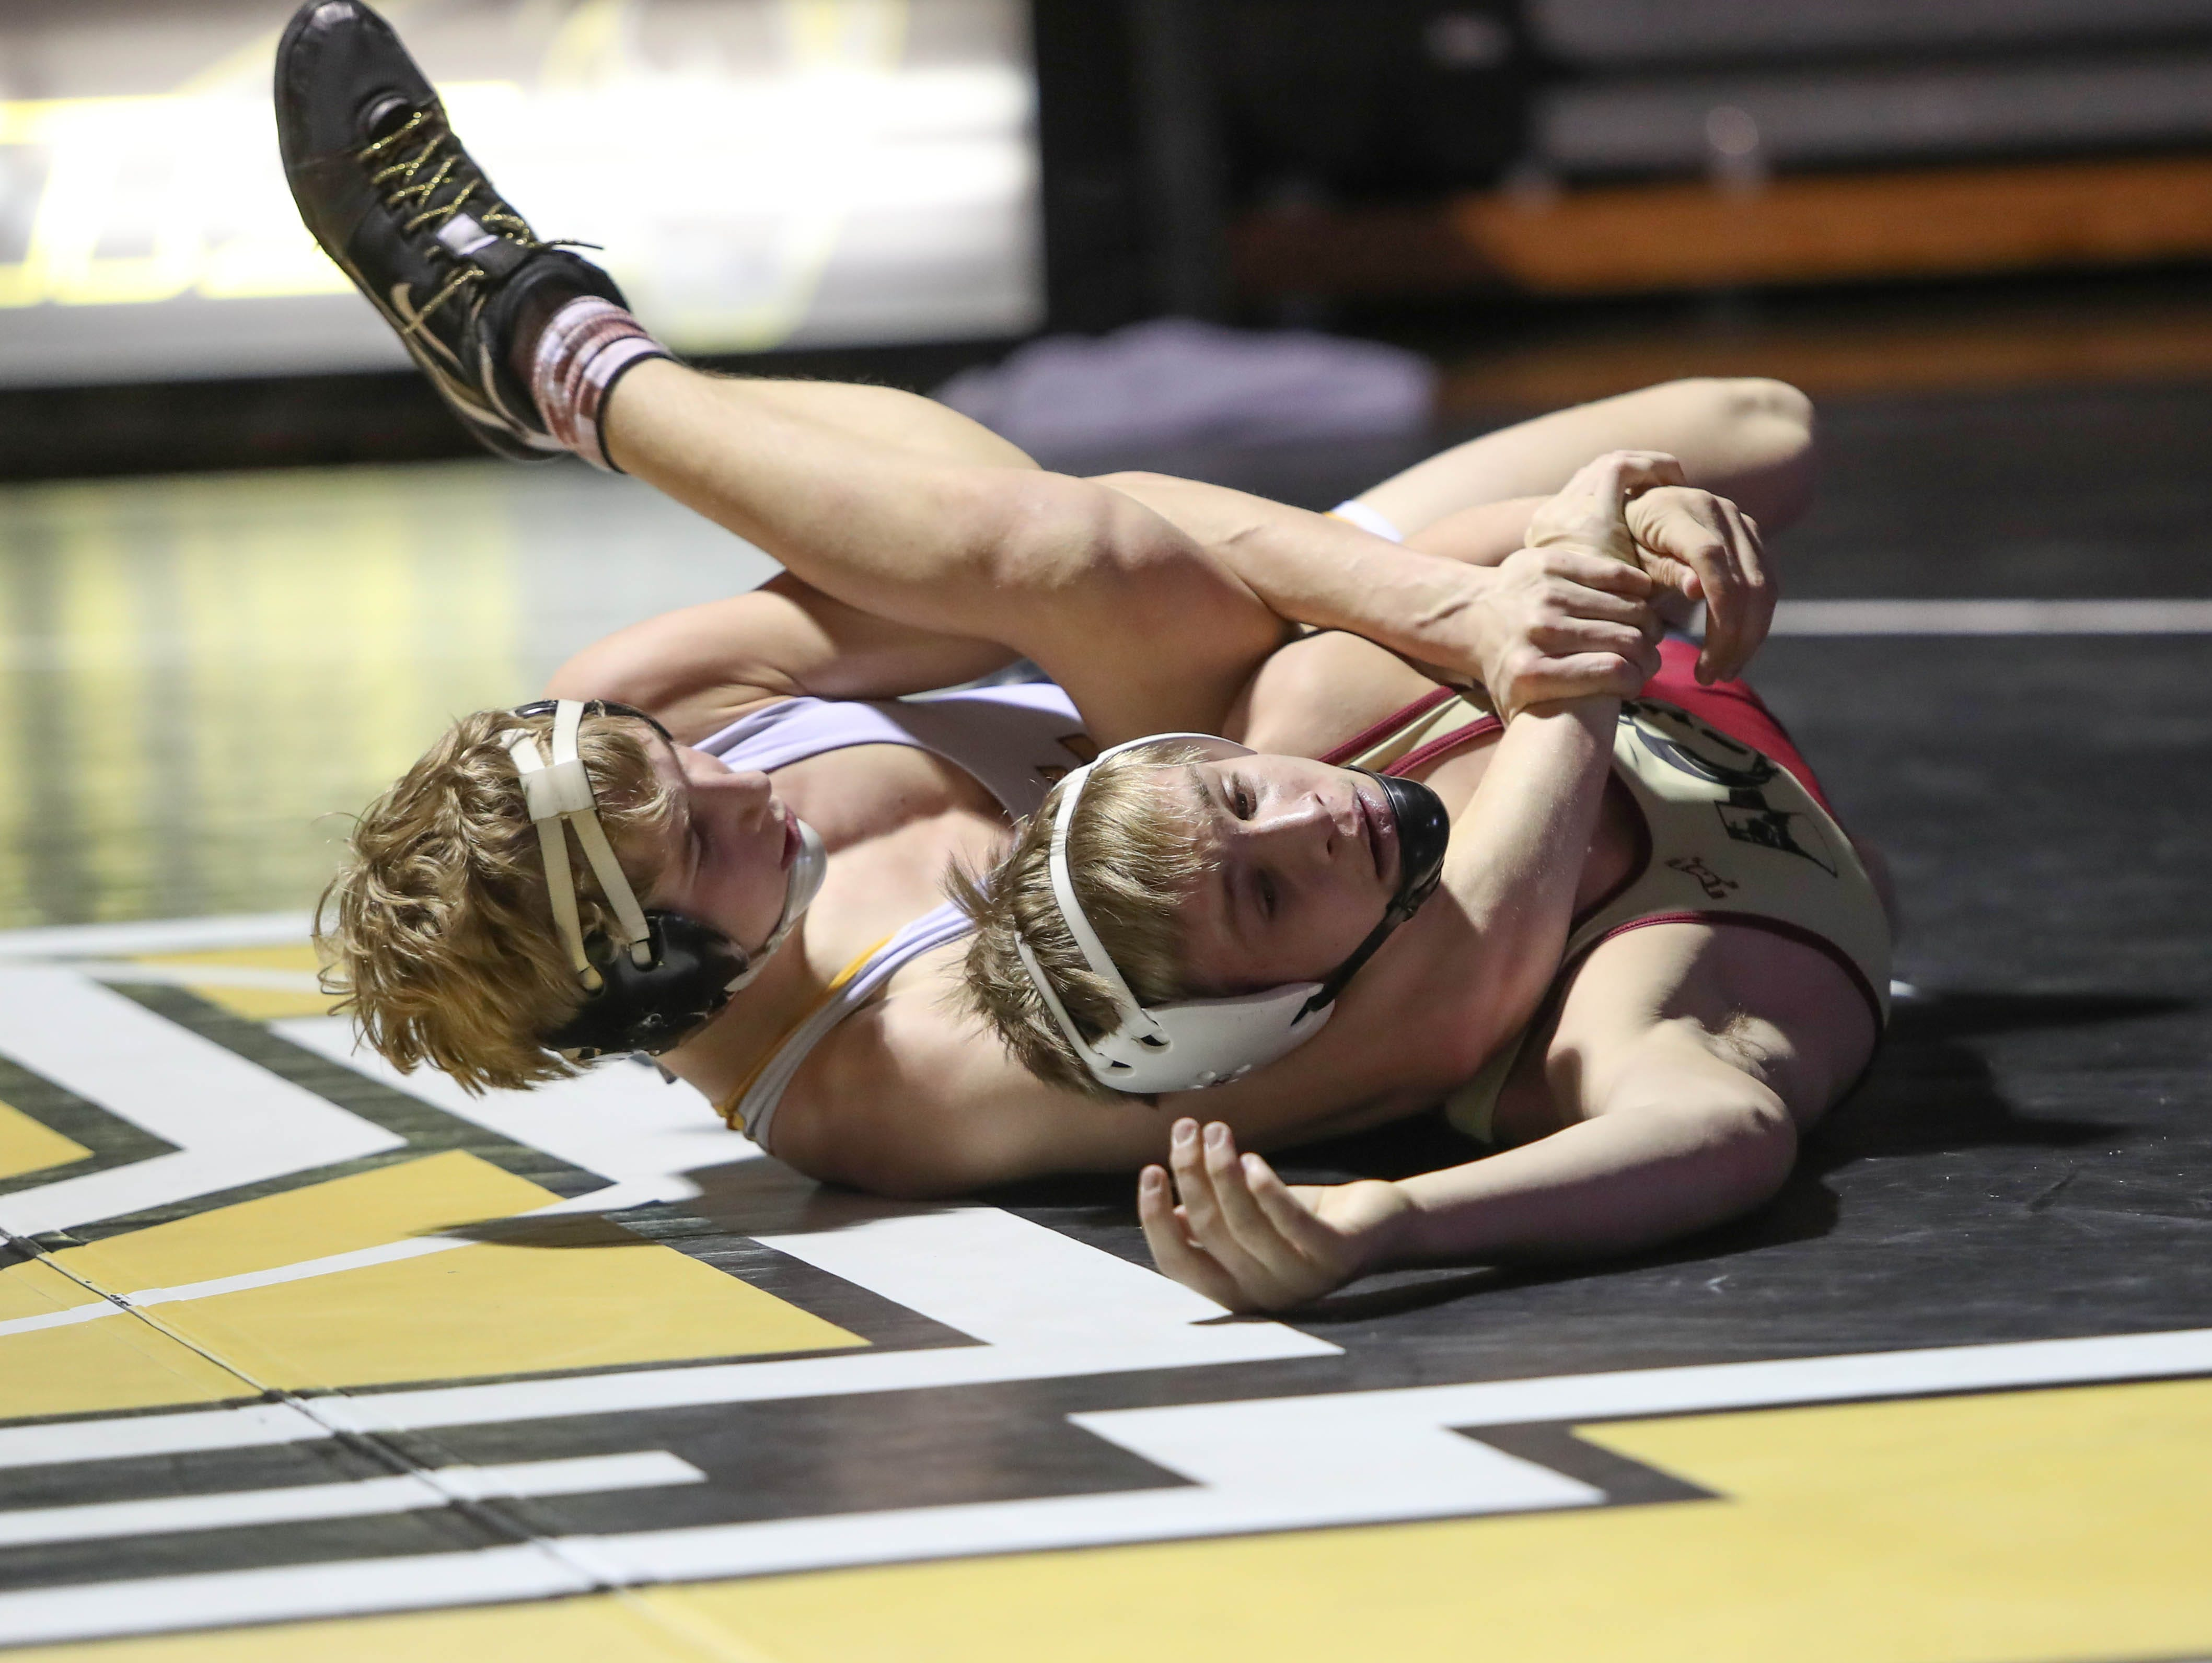 Southeast Polk's Lance Runyon wrestles with Lincoln's Mickey Griffith. The Rams won 61-12 against Lincoln in the Jan. 31, 2019 match at Southeast Polk High.